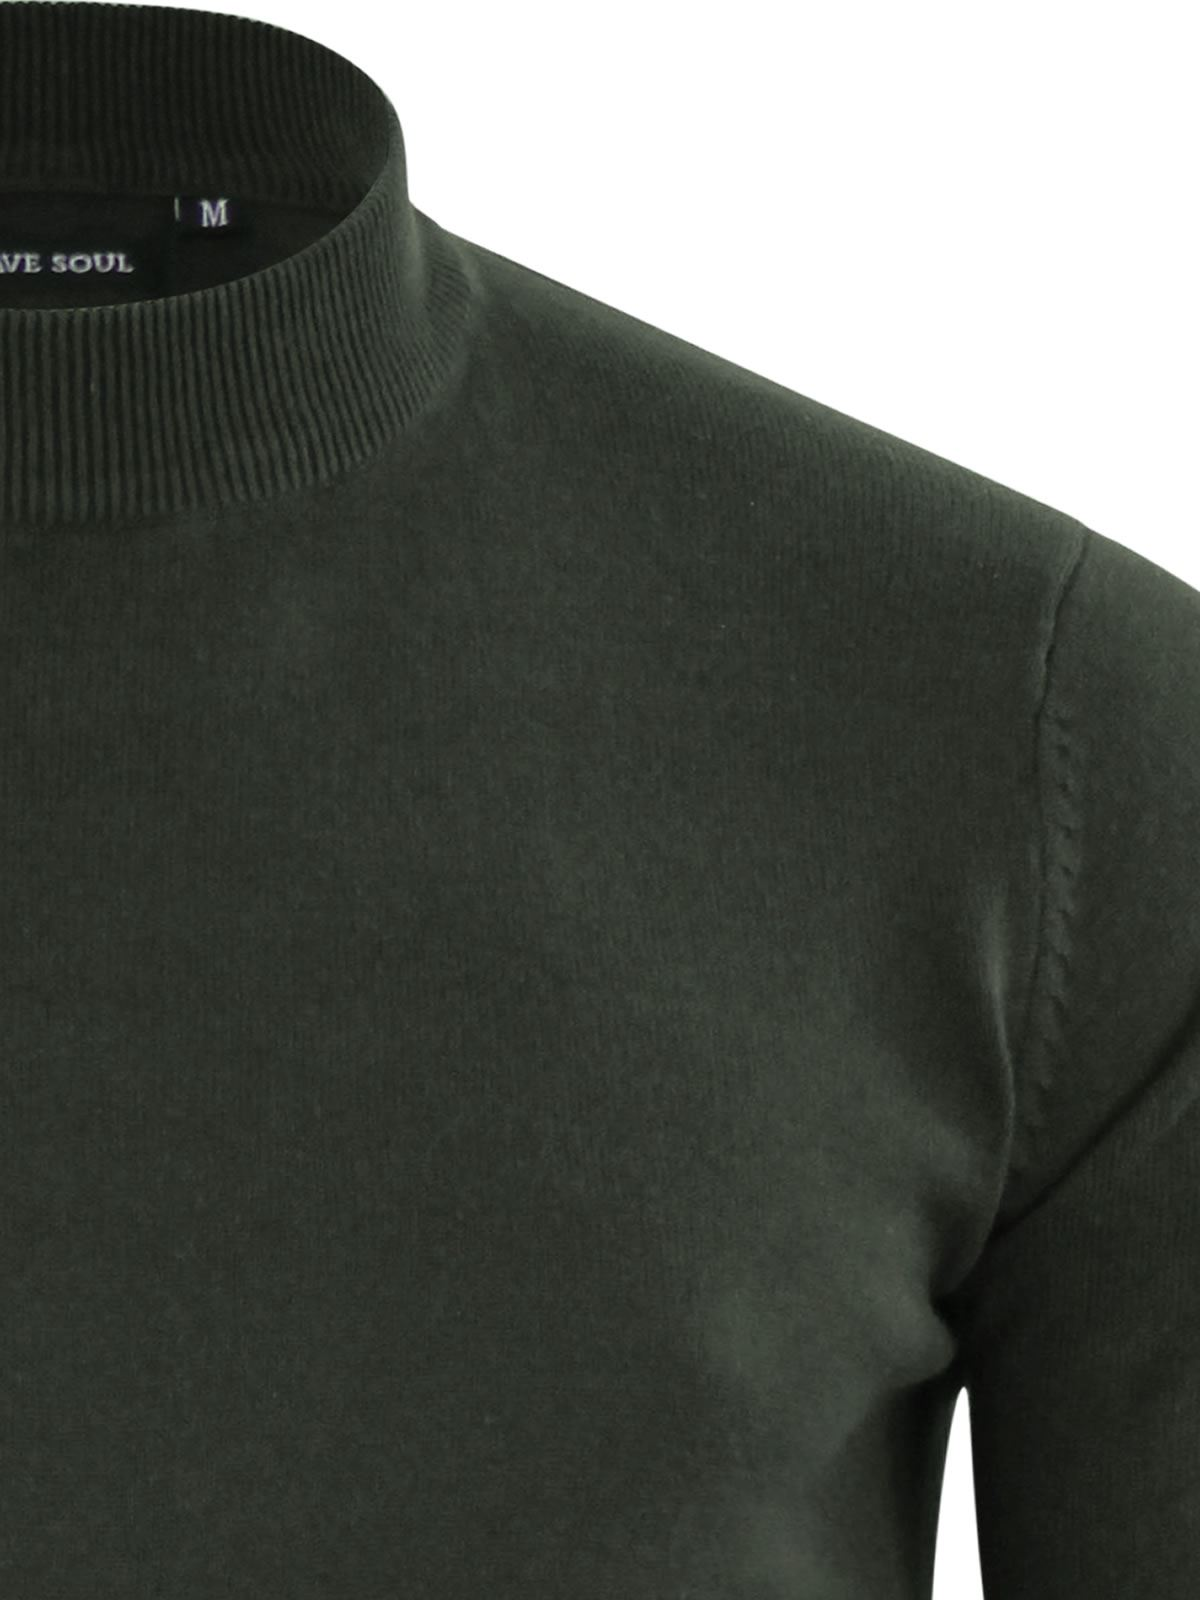 Mens-Jumper-Brave-Soul-Turtle-Neck-Cotton-Pull-Over-Sweater thumbnail 19